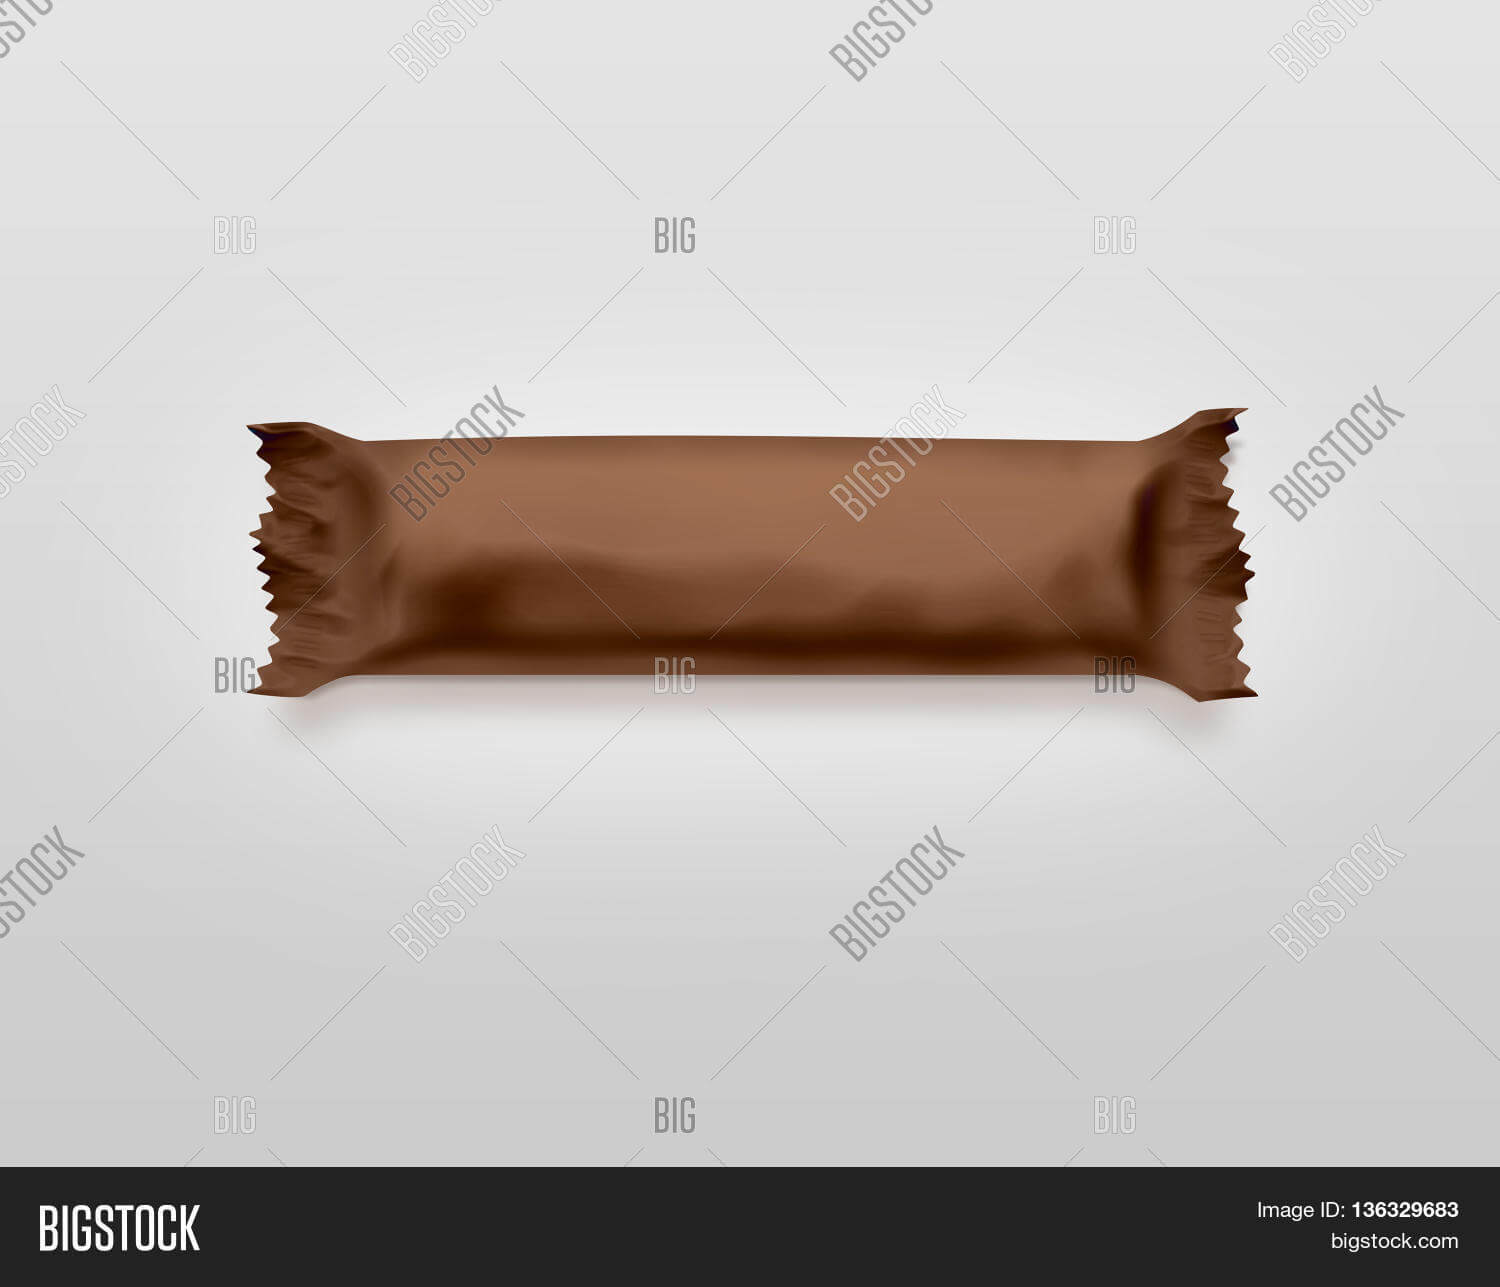 Blank Brown Candy Bar Image & Photo (Free Trial)   Bigstock Pertaining To Free Blank Candy Bar Wrapper Template